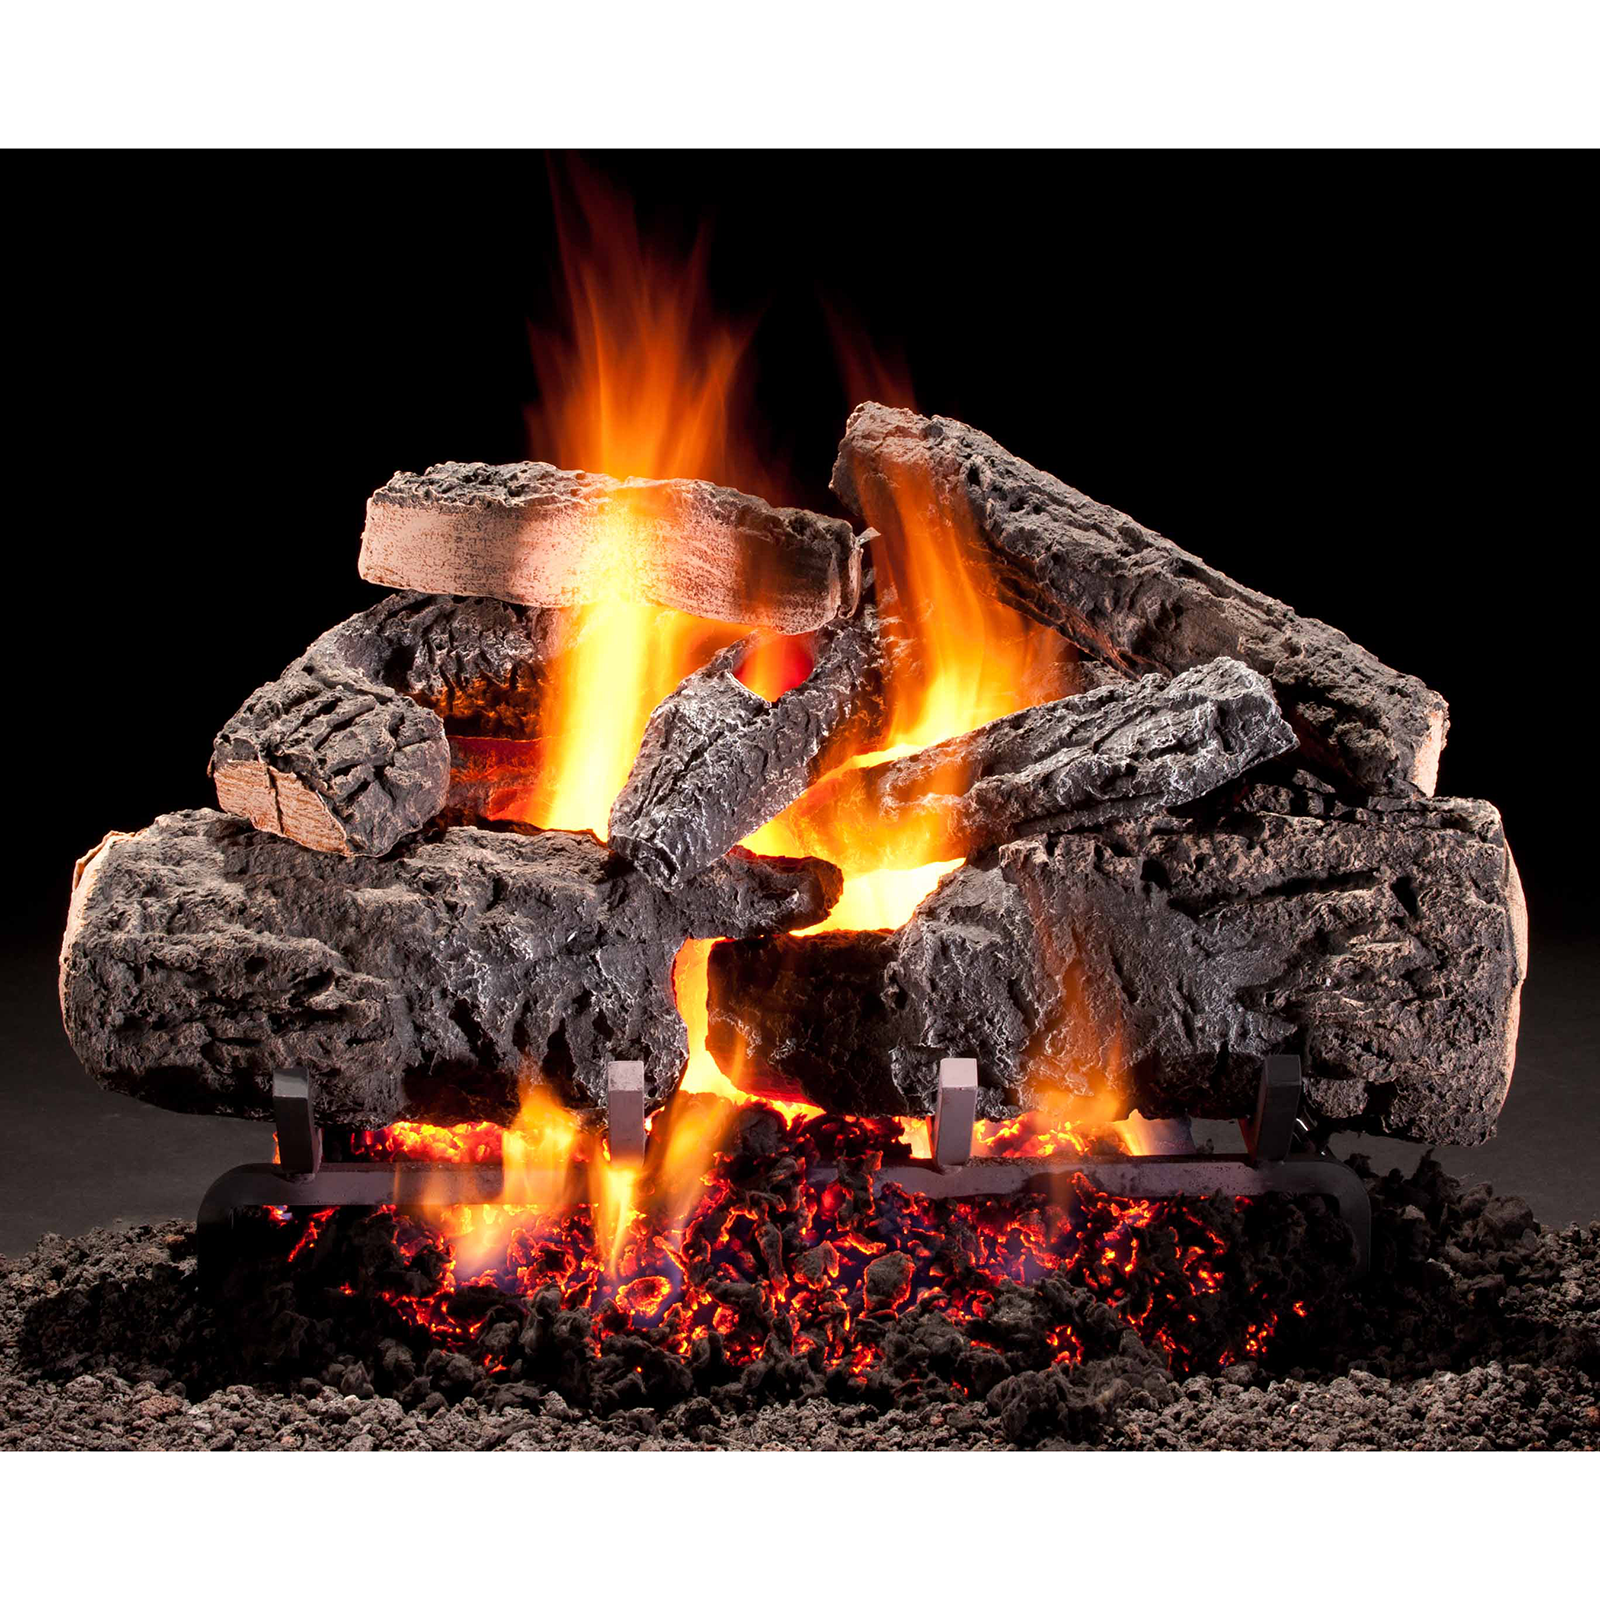 Hargrove Gas Logs Cross Timbers Vented Gas Log Set With E-Burner, Liquid Propane